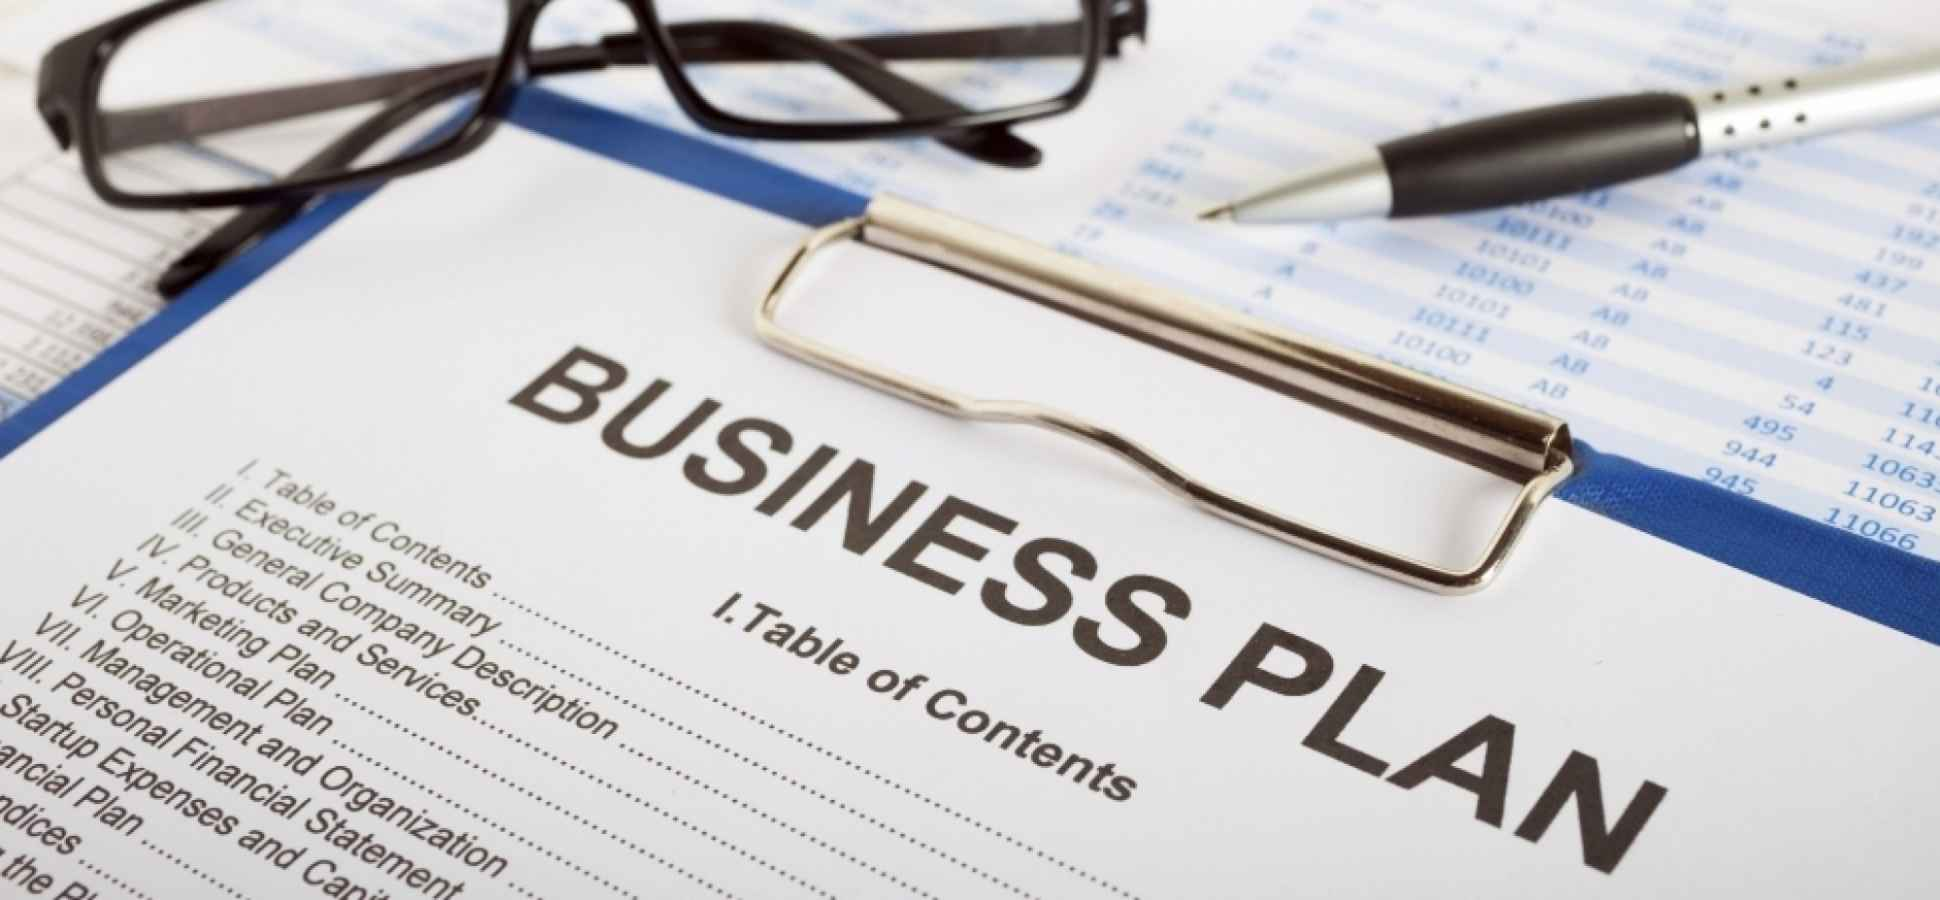 How to plan a new business